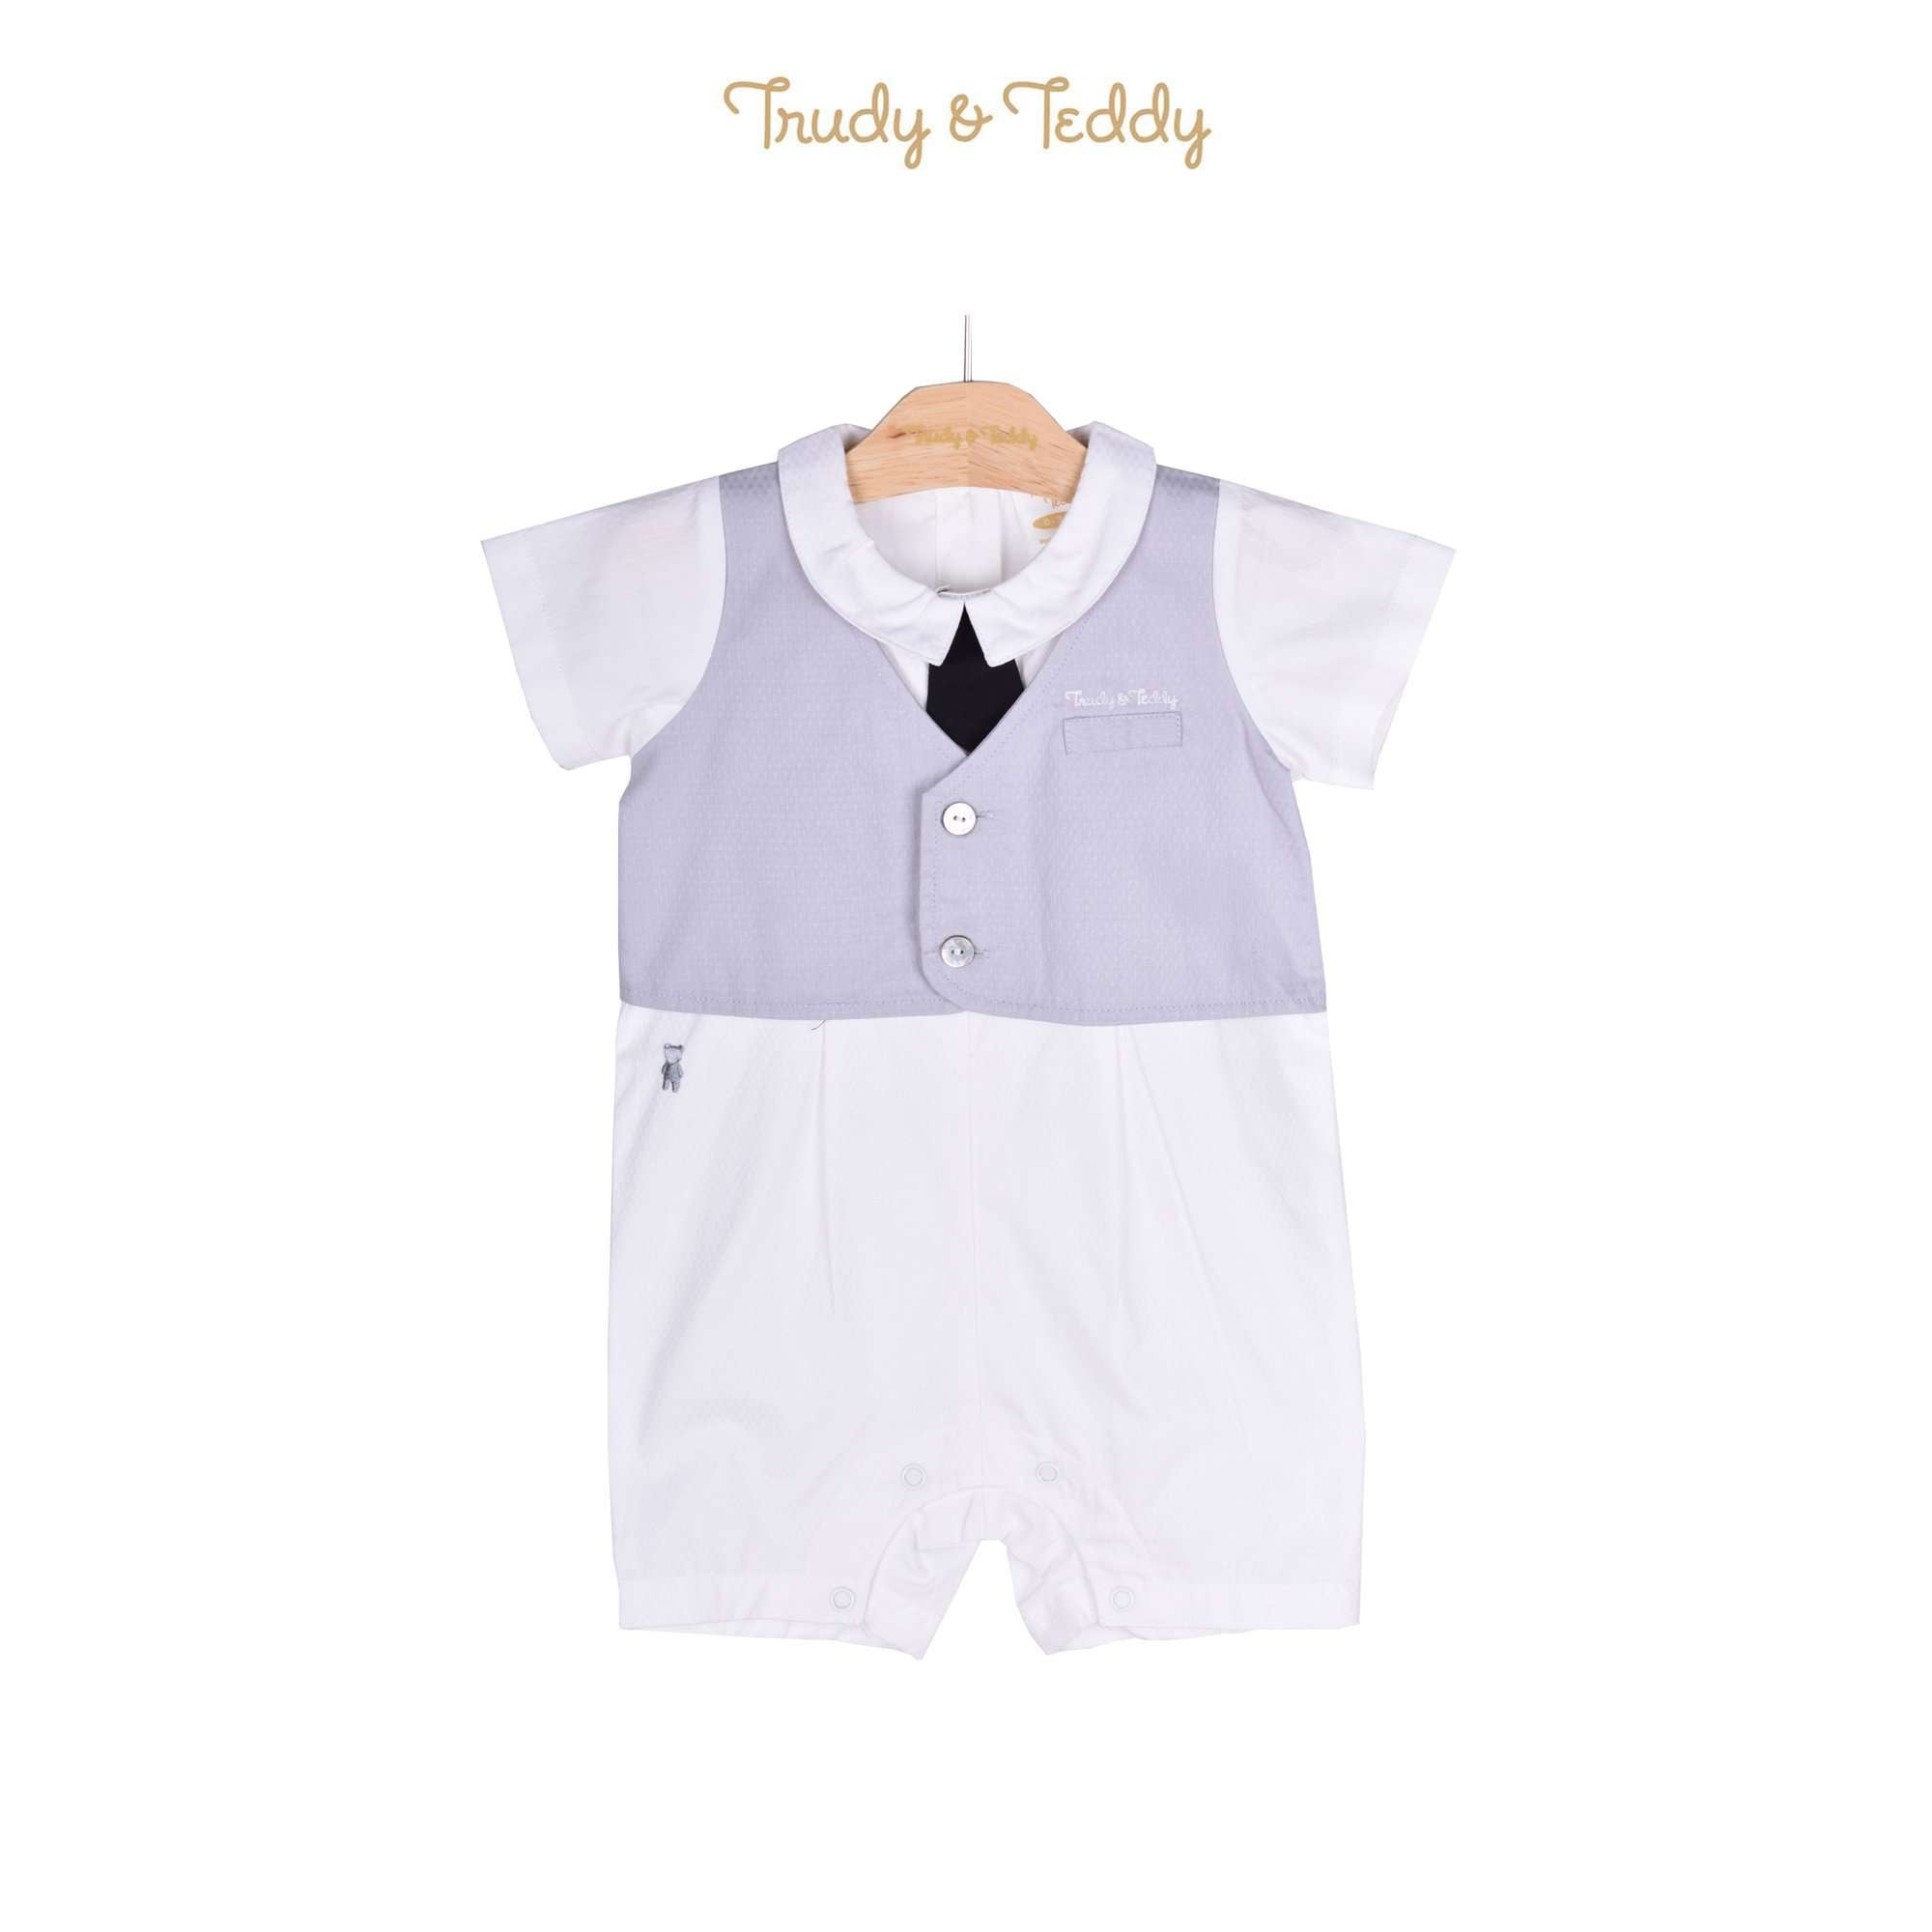 Trudy & Teddy Baby Boy Short Sleeve Short Romper 810029-351 : Buy Trudy & Teddy online at CMG.MY